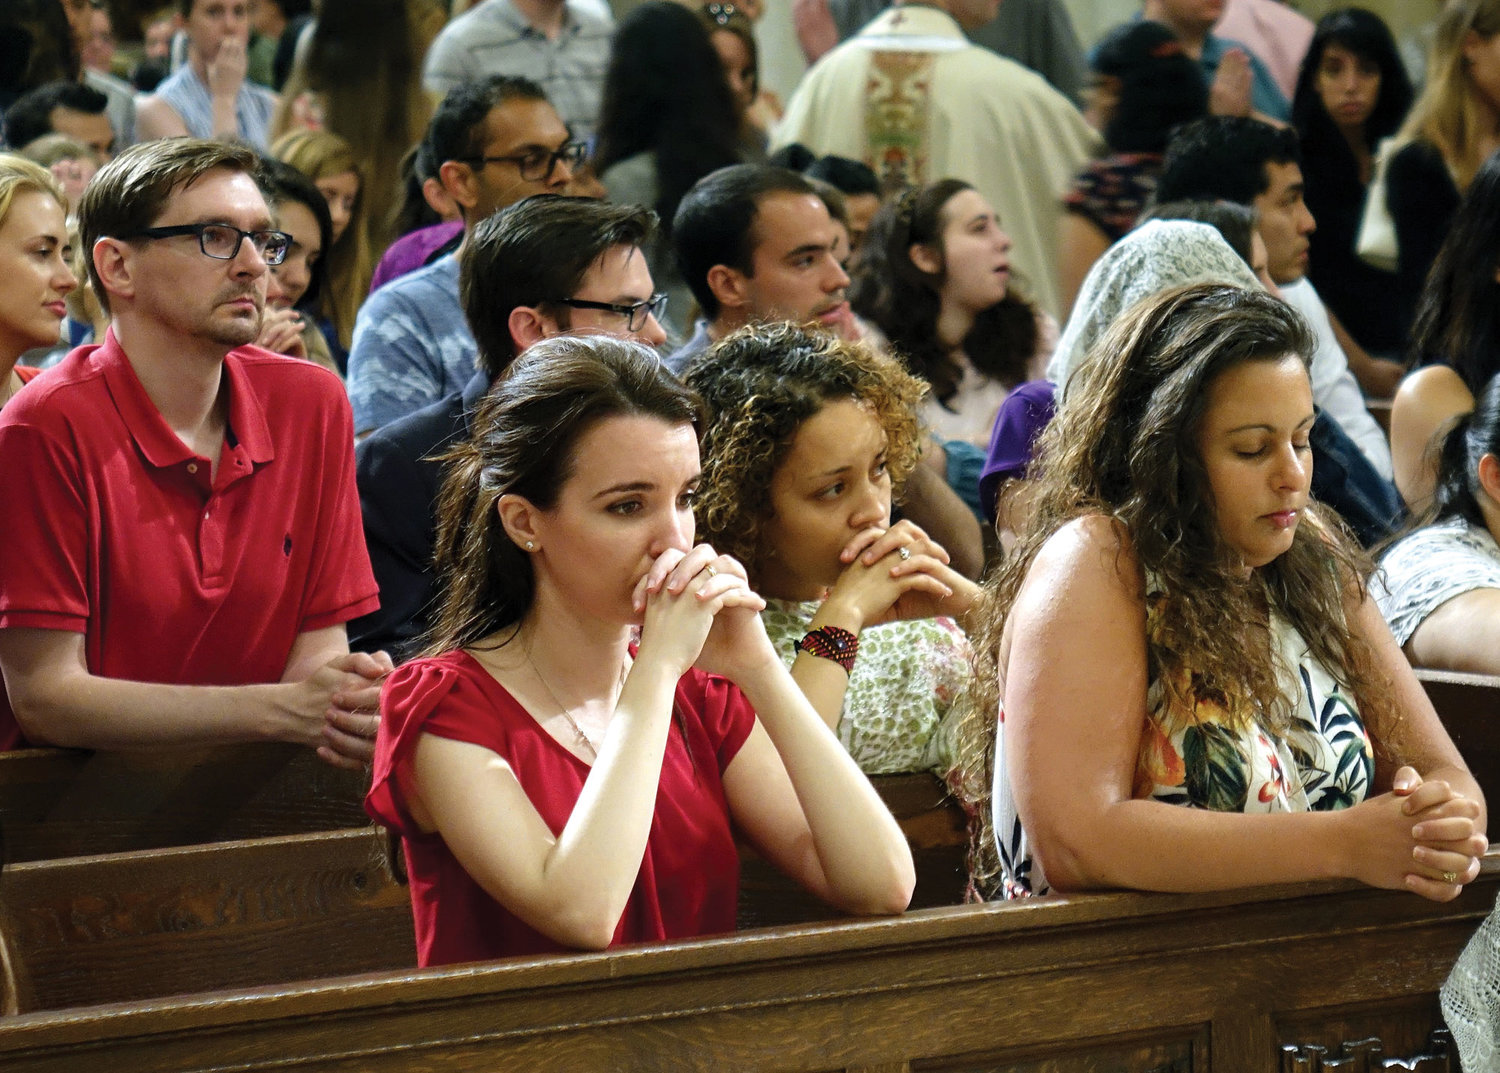 Young adult Catholics pray at Mass celebrated for them by Cardinal Dolan at St. Patrick's Cathedral last July.